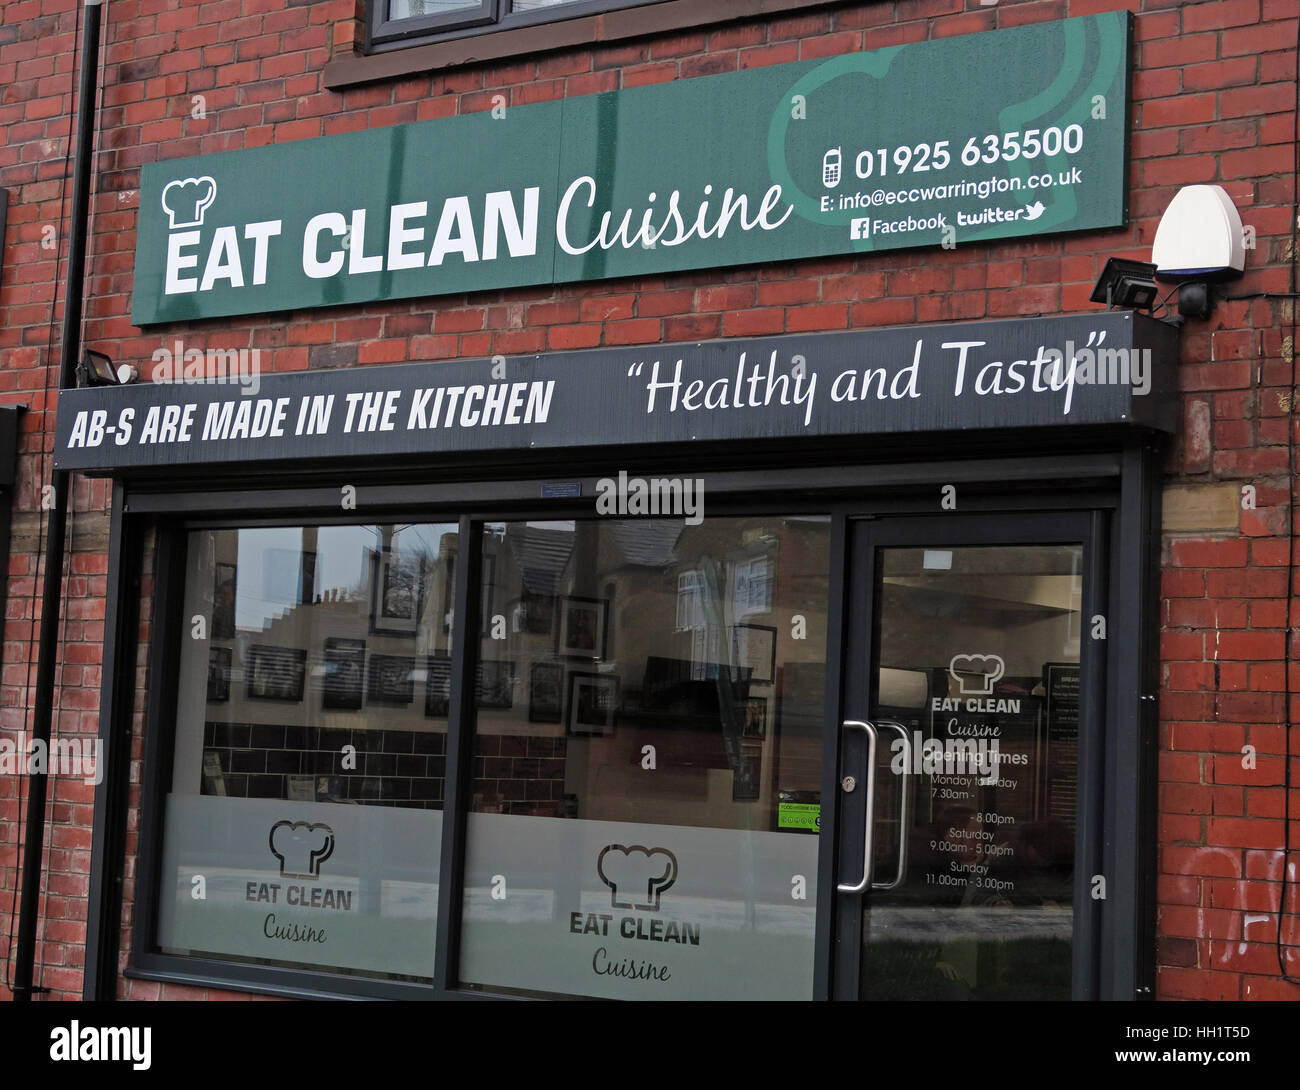 Cheshire,England,UK,clean,eat,eating,diet,Eat